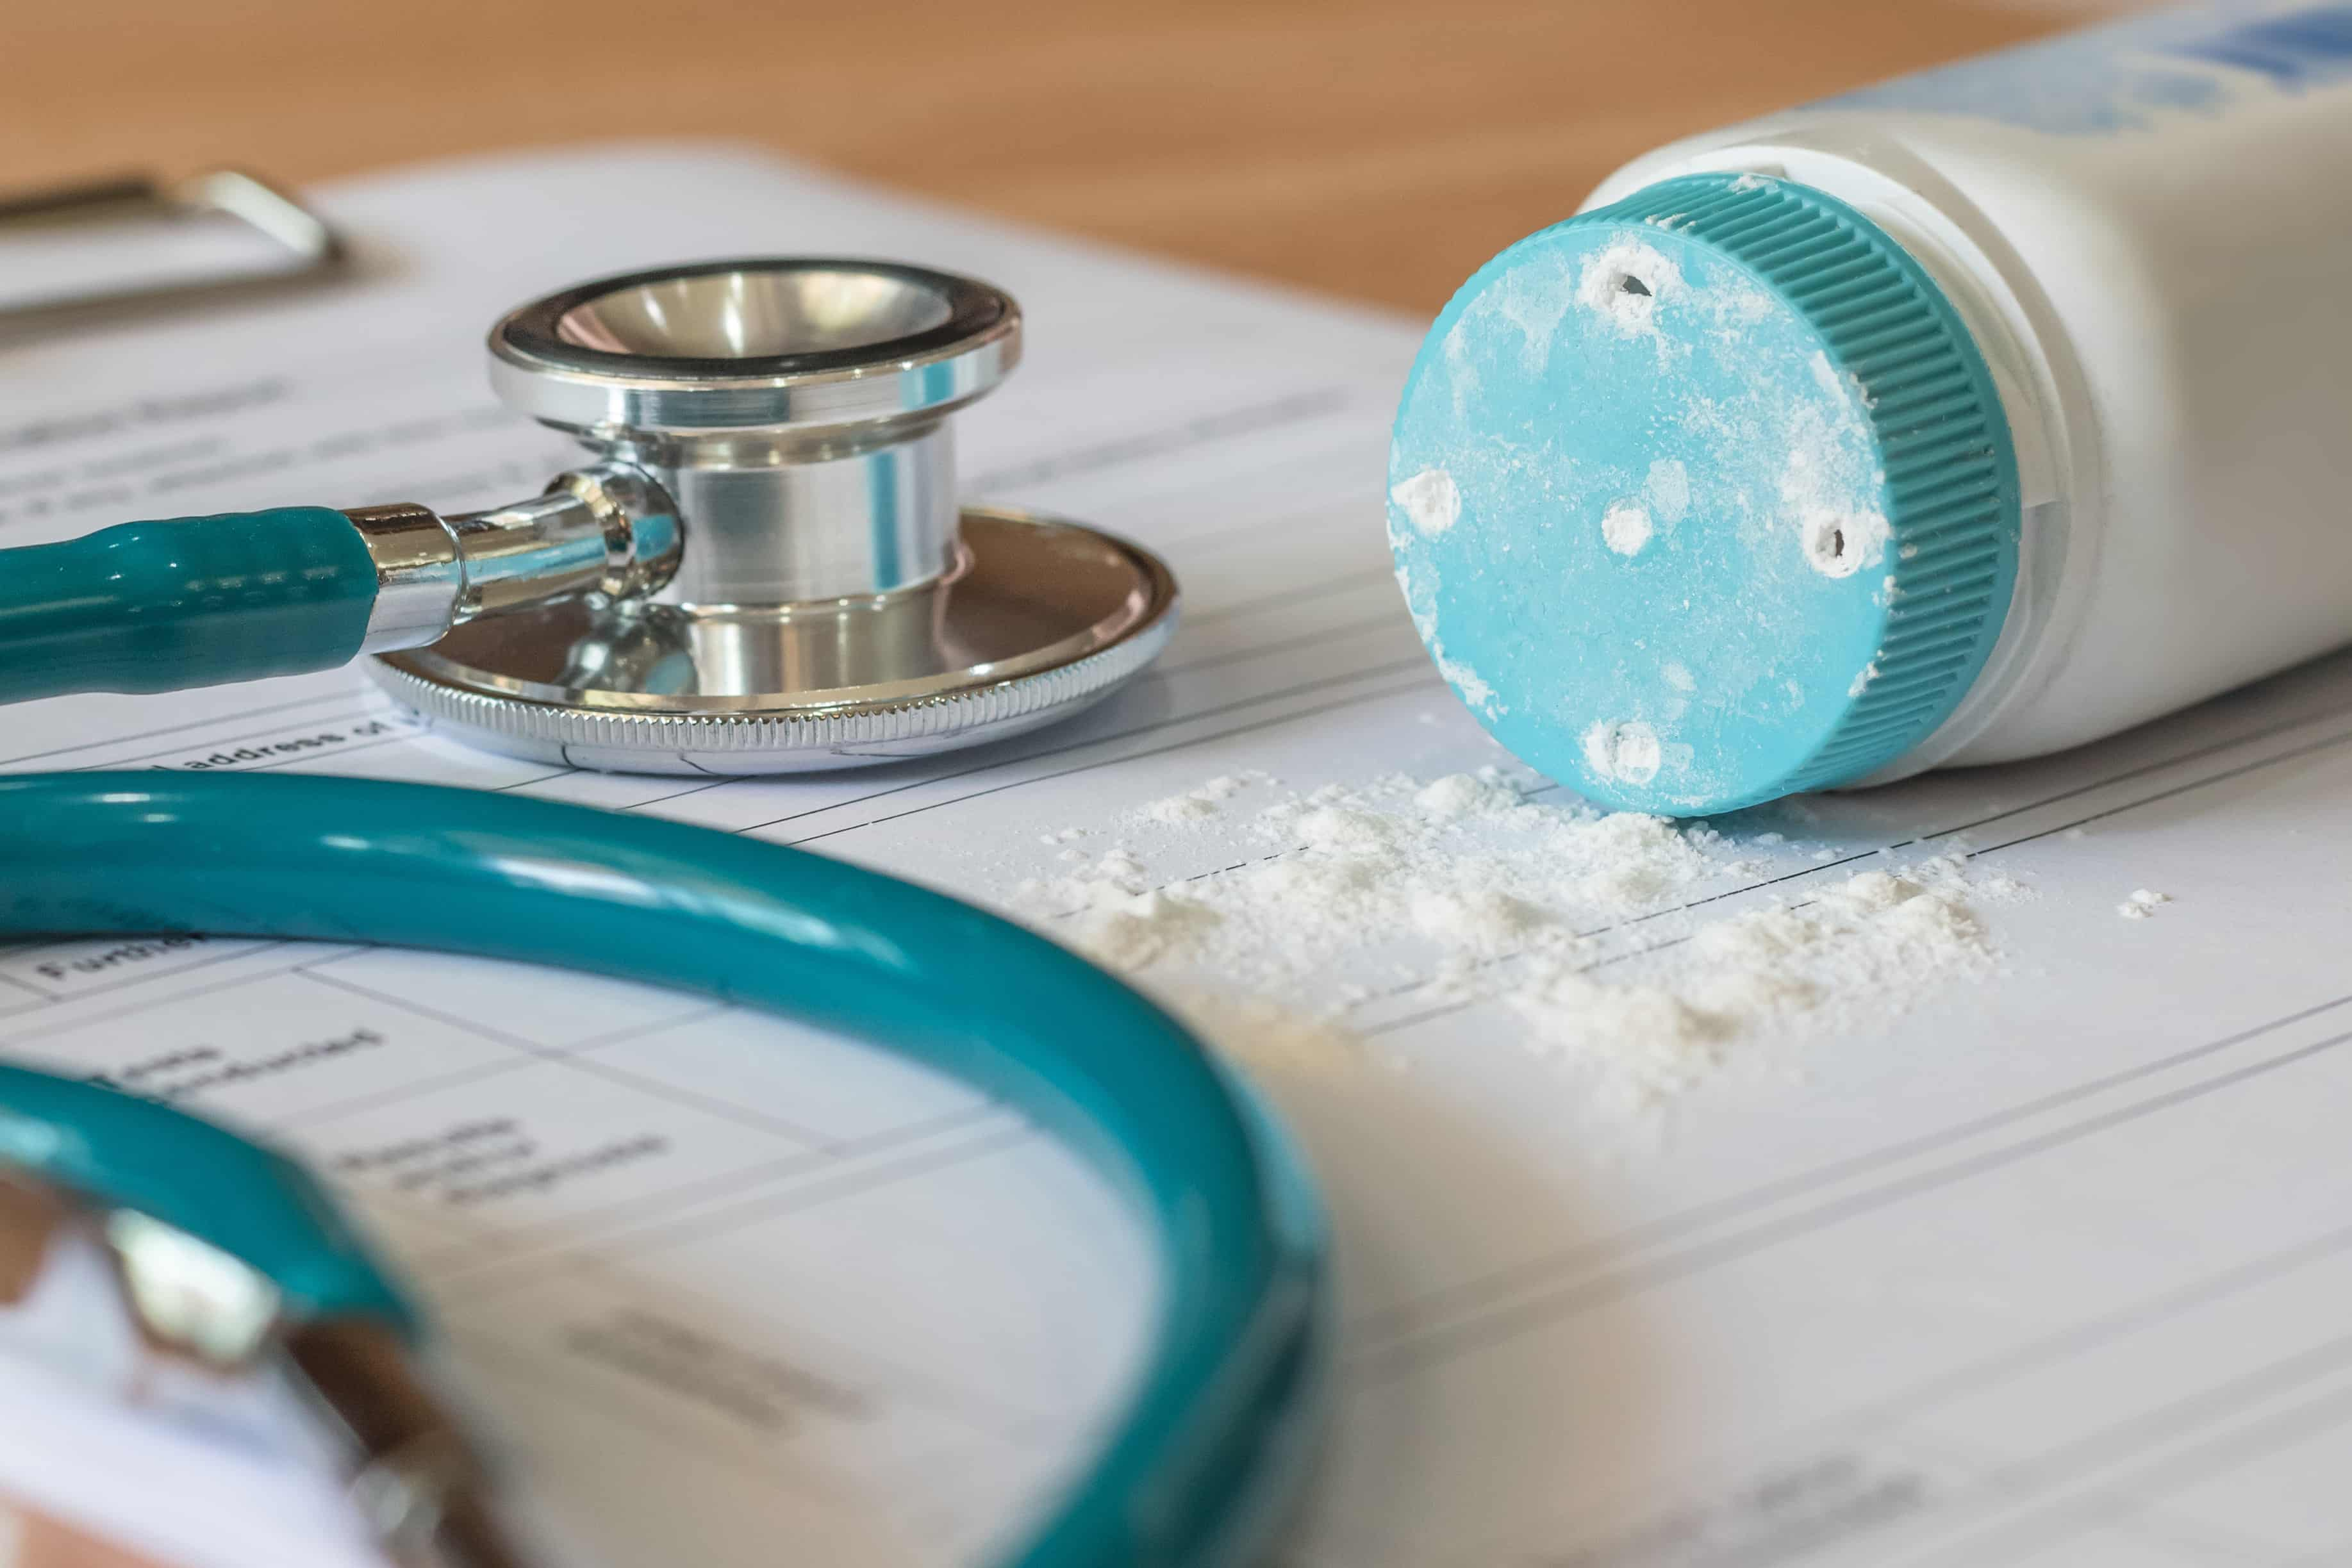 Image of spilled talcum powder from an unmarked talcum powder bottle next to a stethoscope